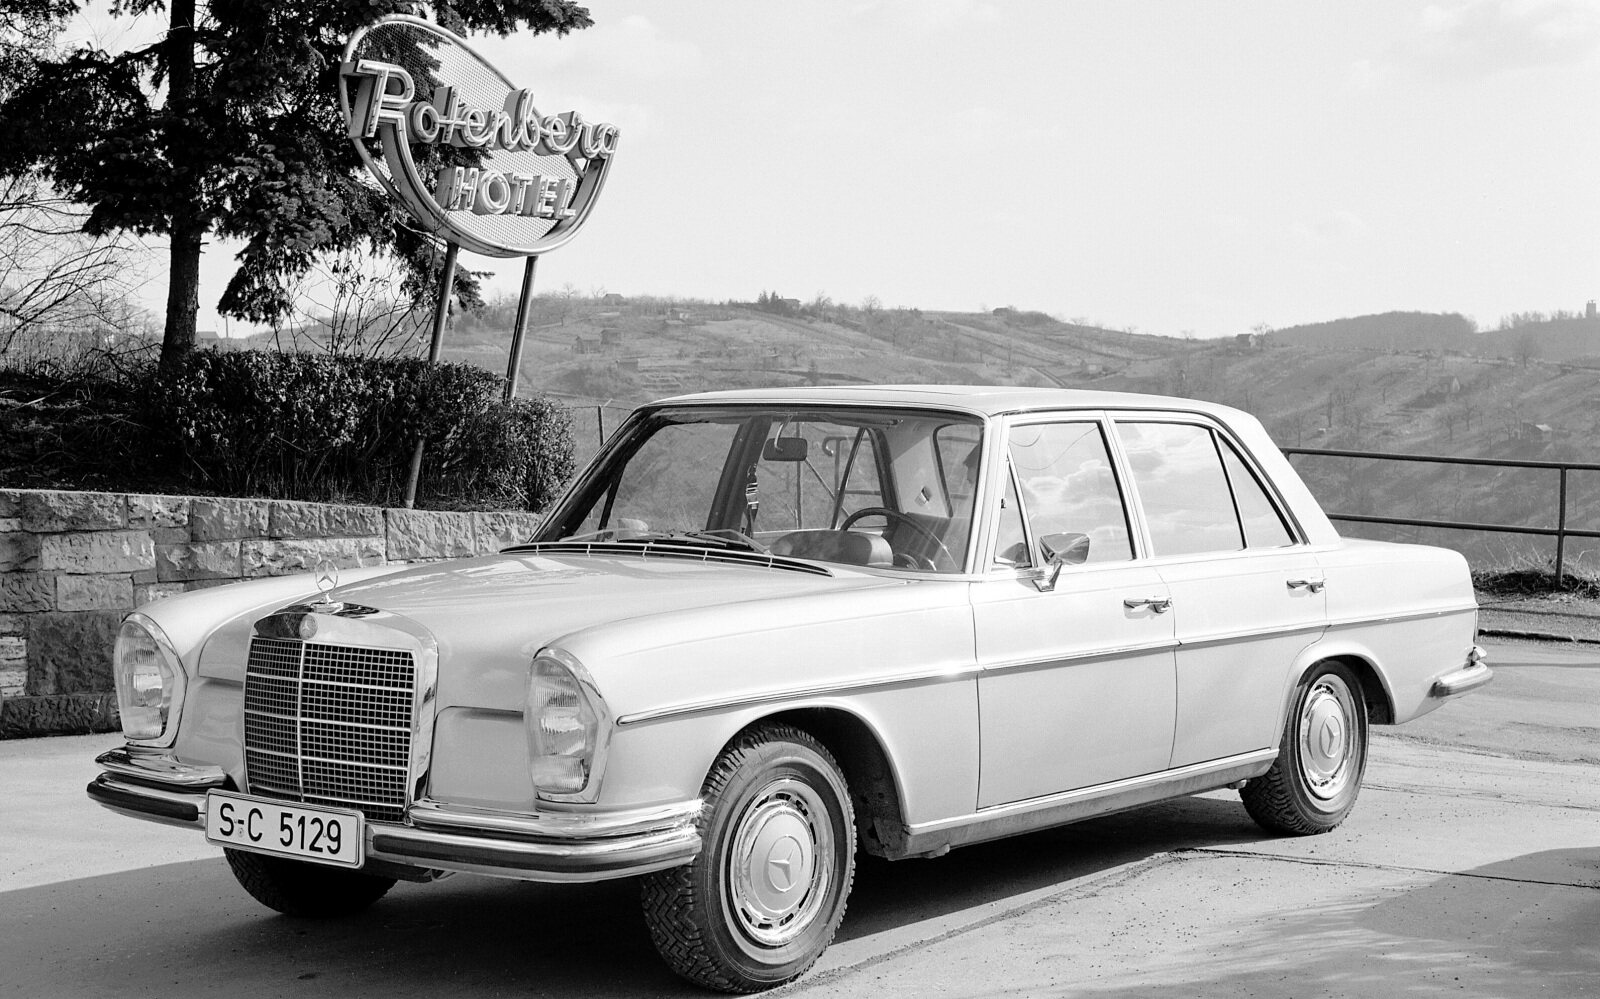 PKW4161 Types 250 S - 300 SEL 6.3 (108, 109 series), 1965 - 1972